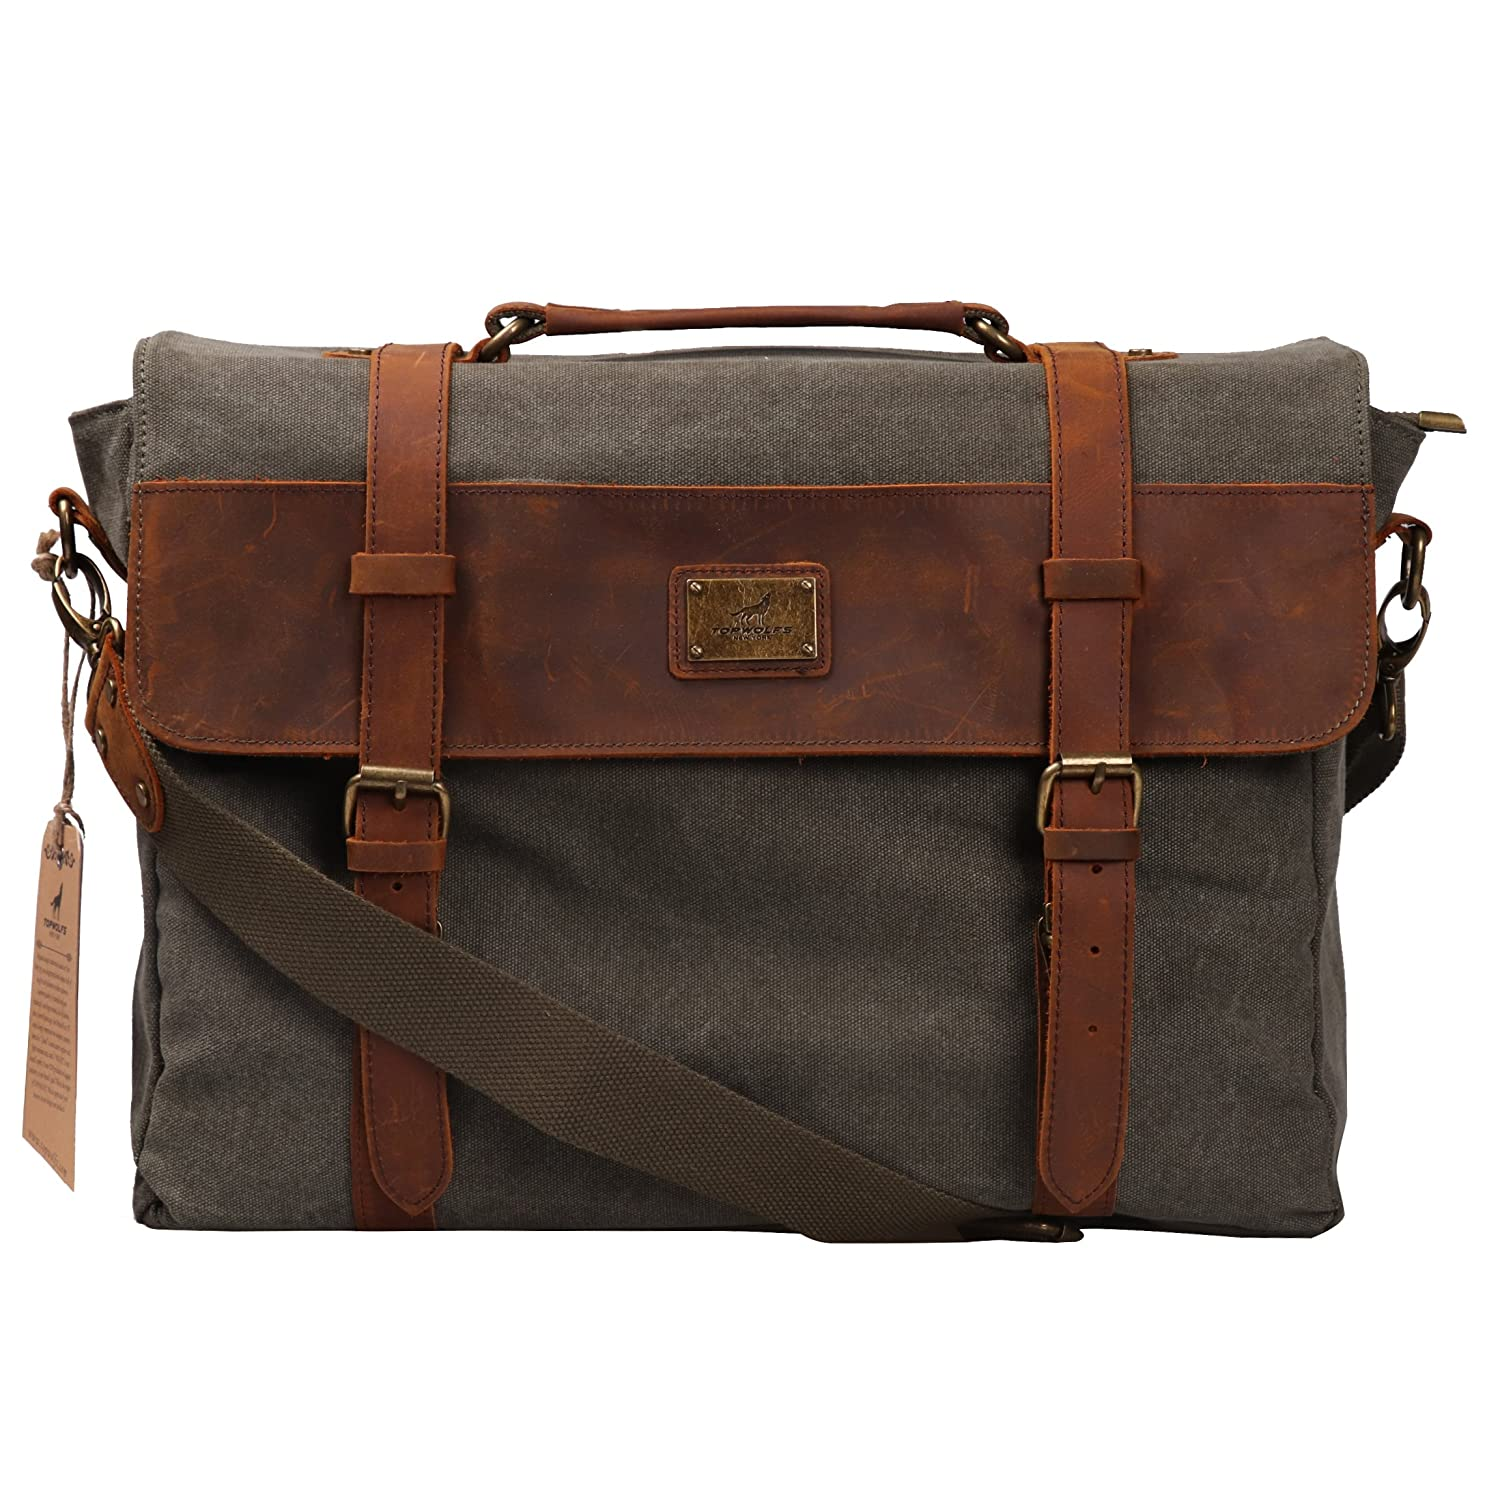 Handbags Suitable for 15 Inch Computers Shoulder Bags Briefcases Sunset Mens and Womens Computer Bags